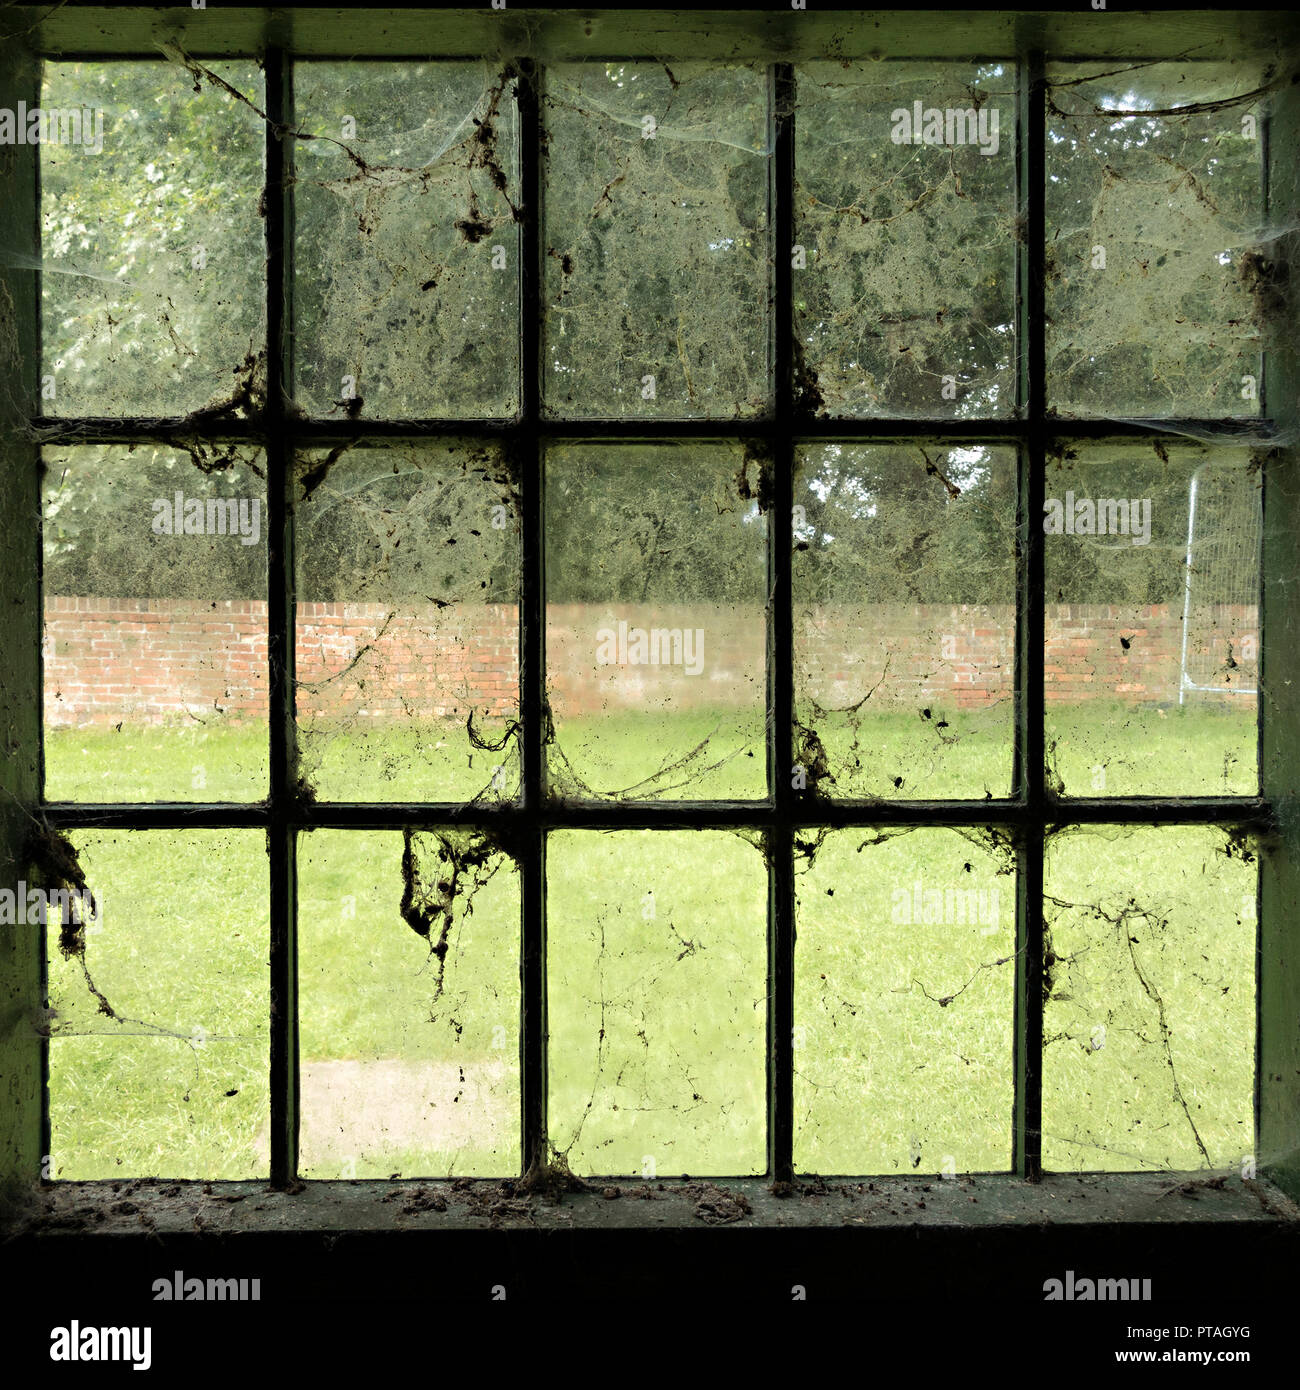 Dirty windows - old, dirty, glass window panes covered in cobwebs, spider webs, dust and dirt. - Stock Image